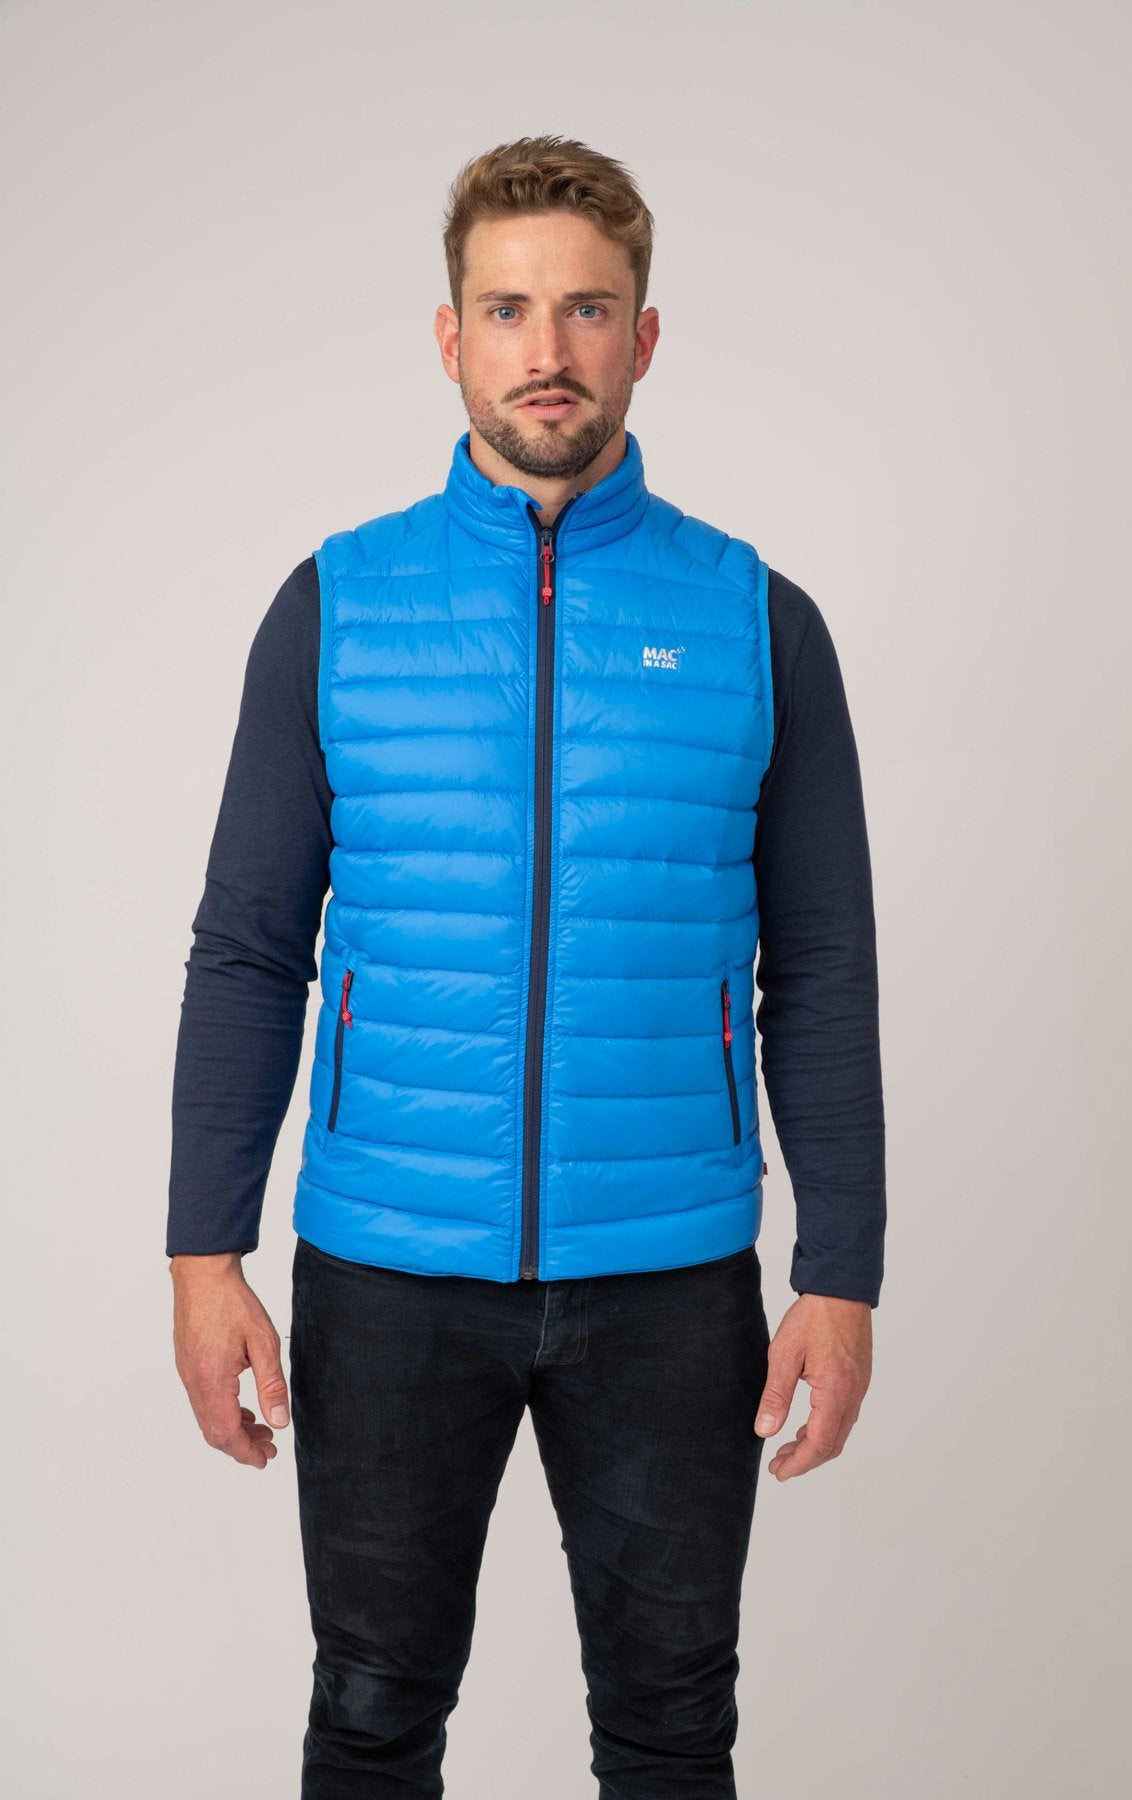 Alpine - Men's Packable Down Gilet - Ocean